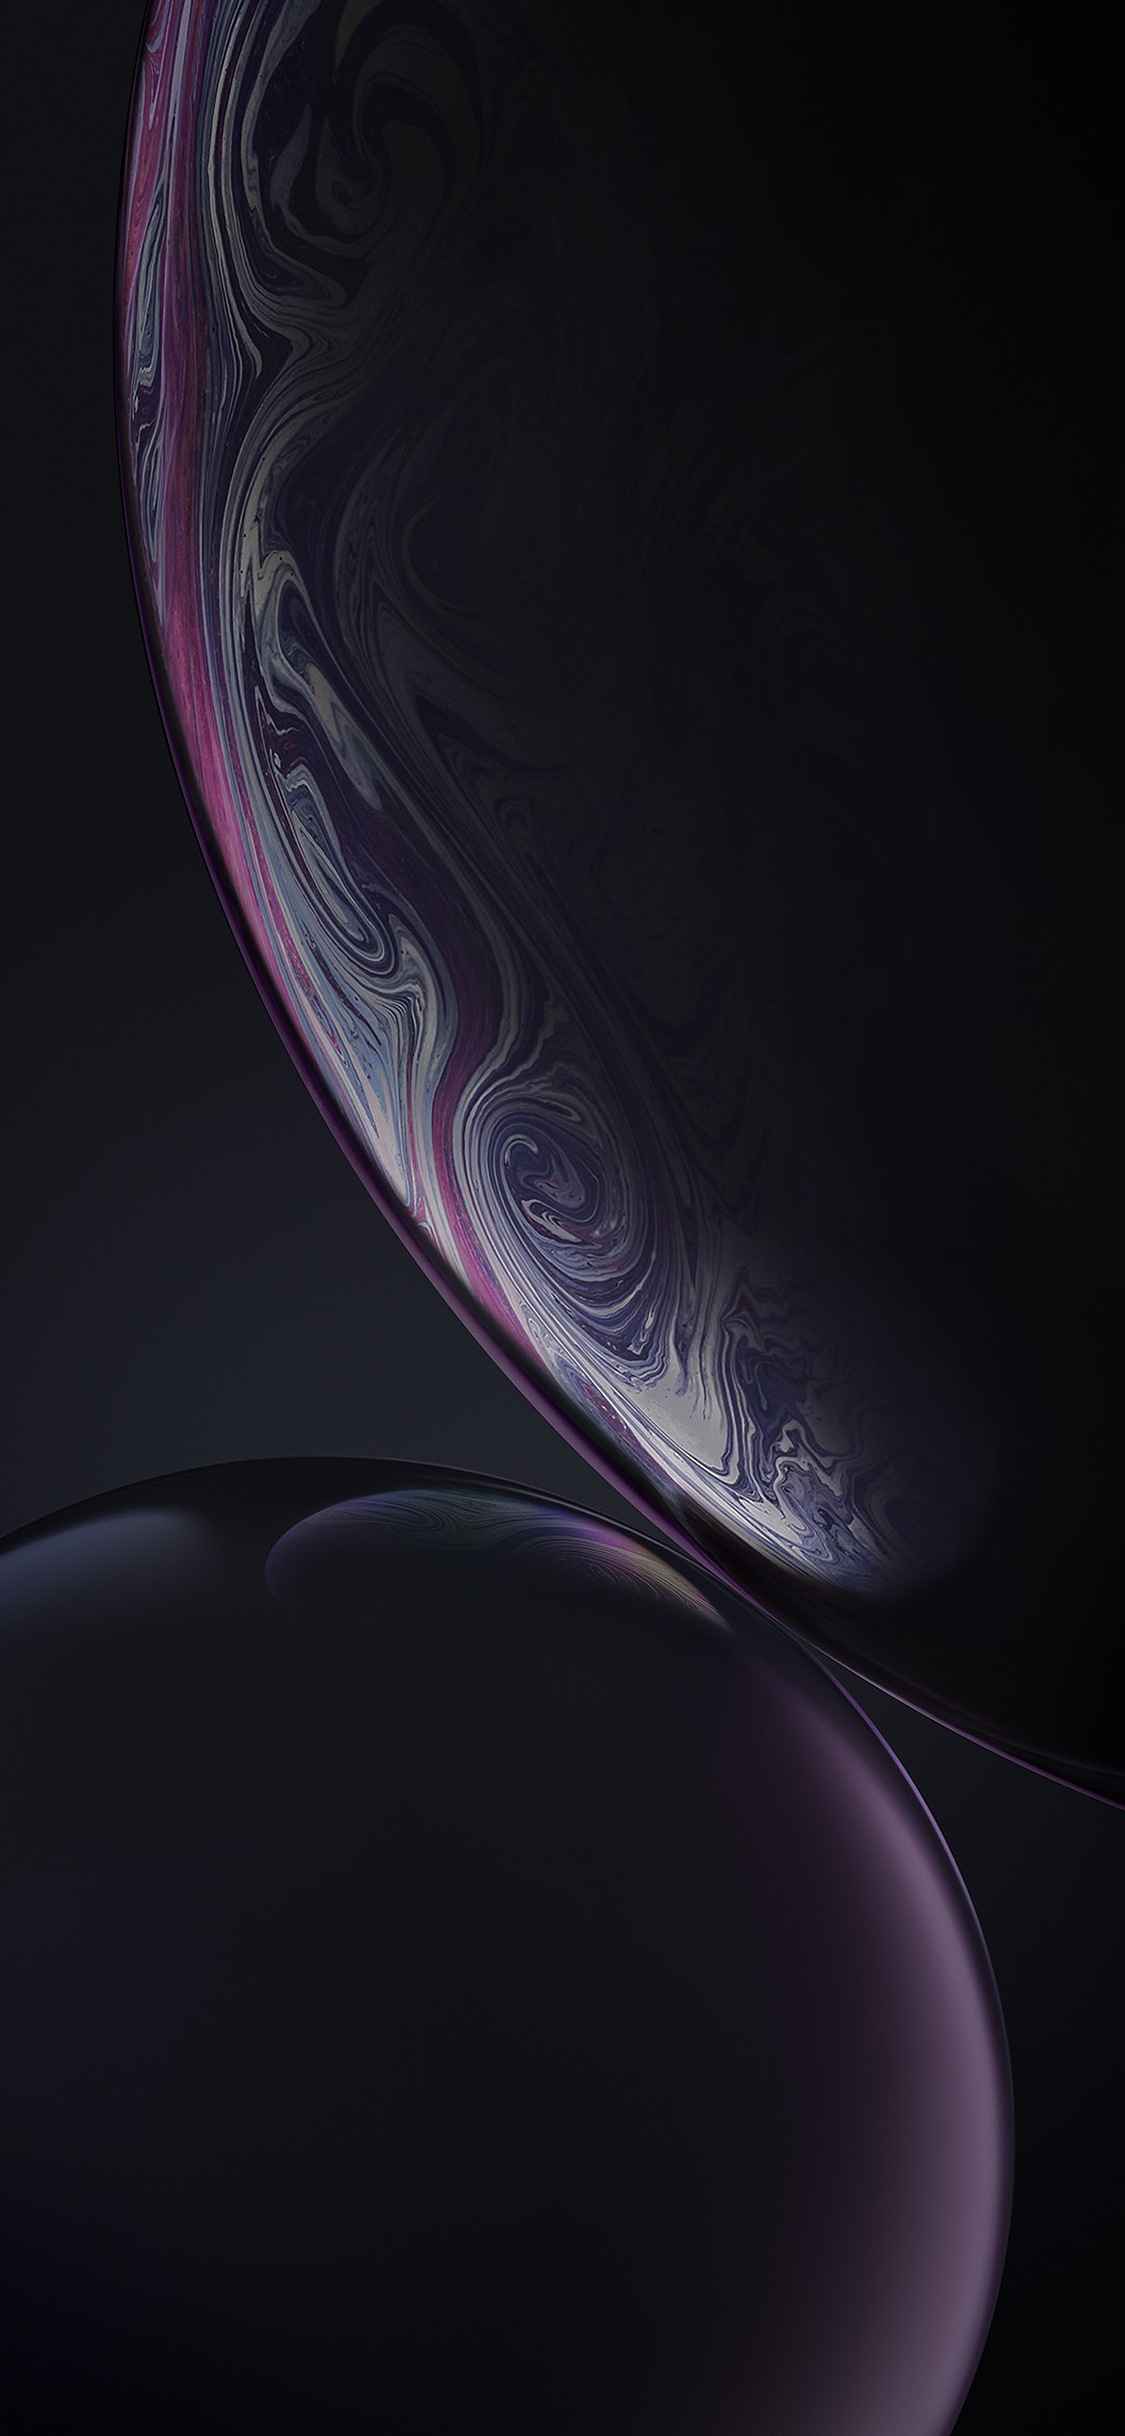 iPhone XR Black Wallpaper in 2020 Live wallpaper iphone